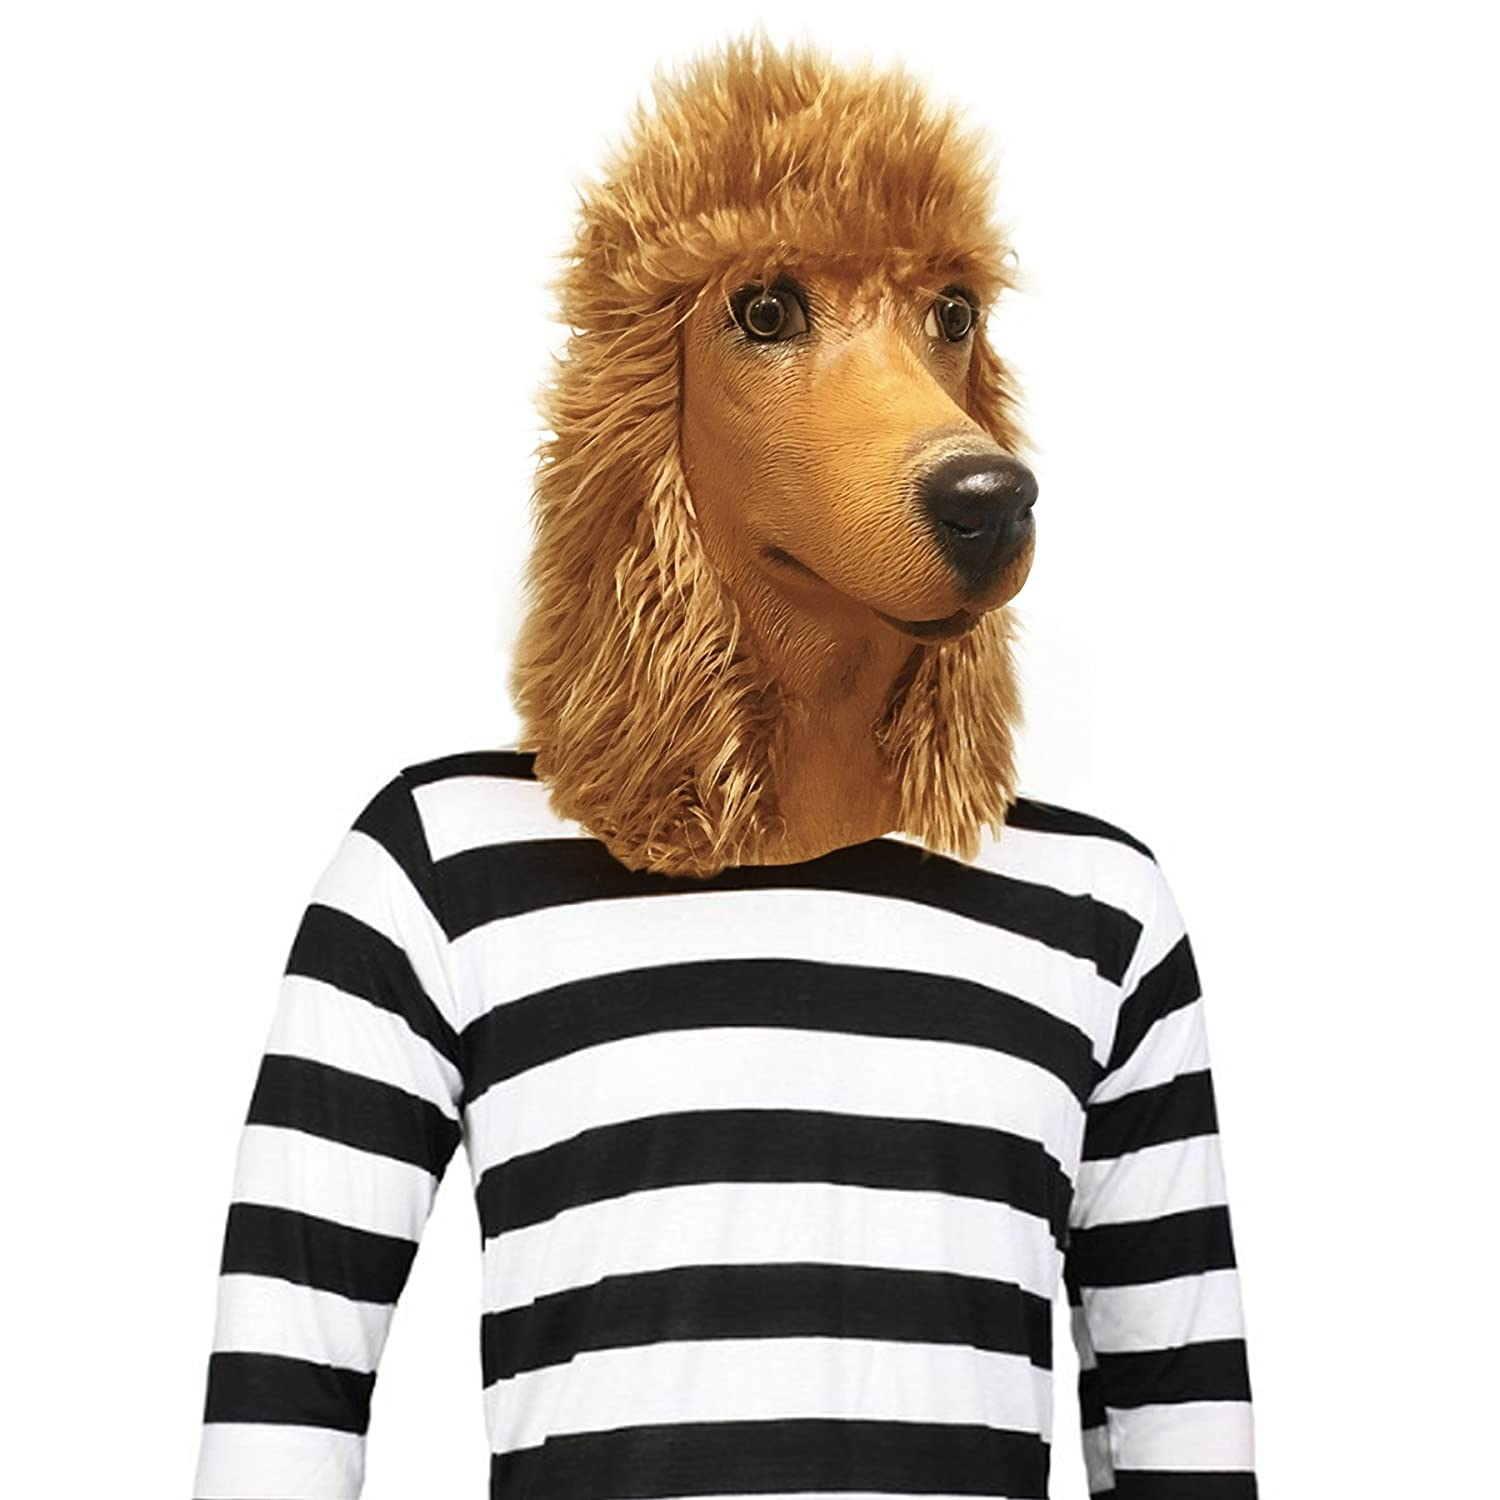 amazoncom off the wall toys standard poodle dog halloween costume face mask kennel club apricot clothing